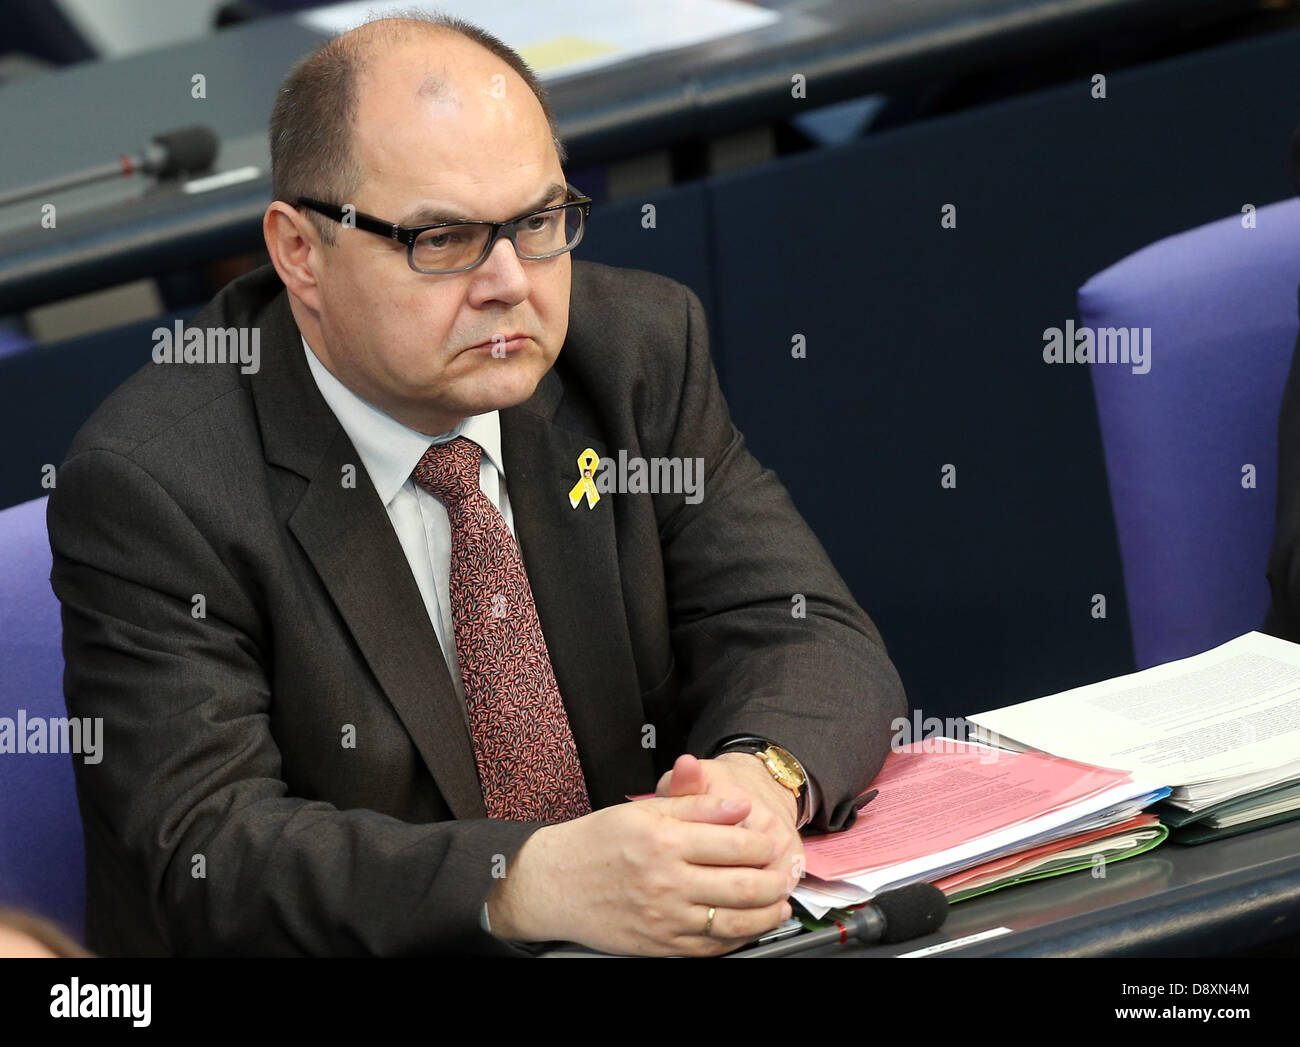 Berlin, Germany. 6th June 2013. Christian Schmidt, Parliamentary State Secretary, attends the debate in the German - Stock Image